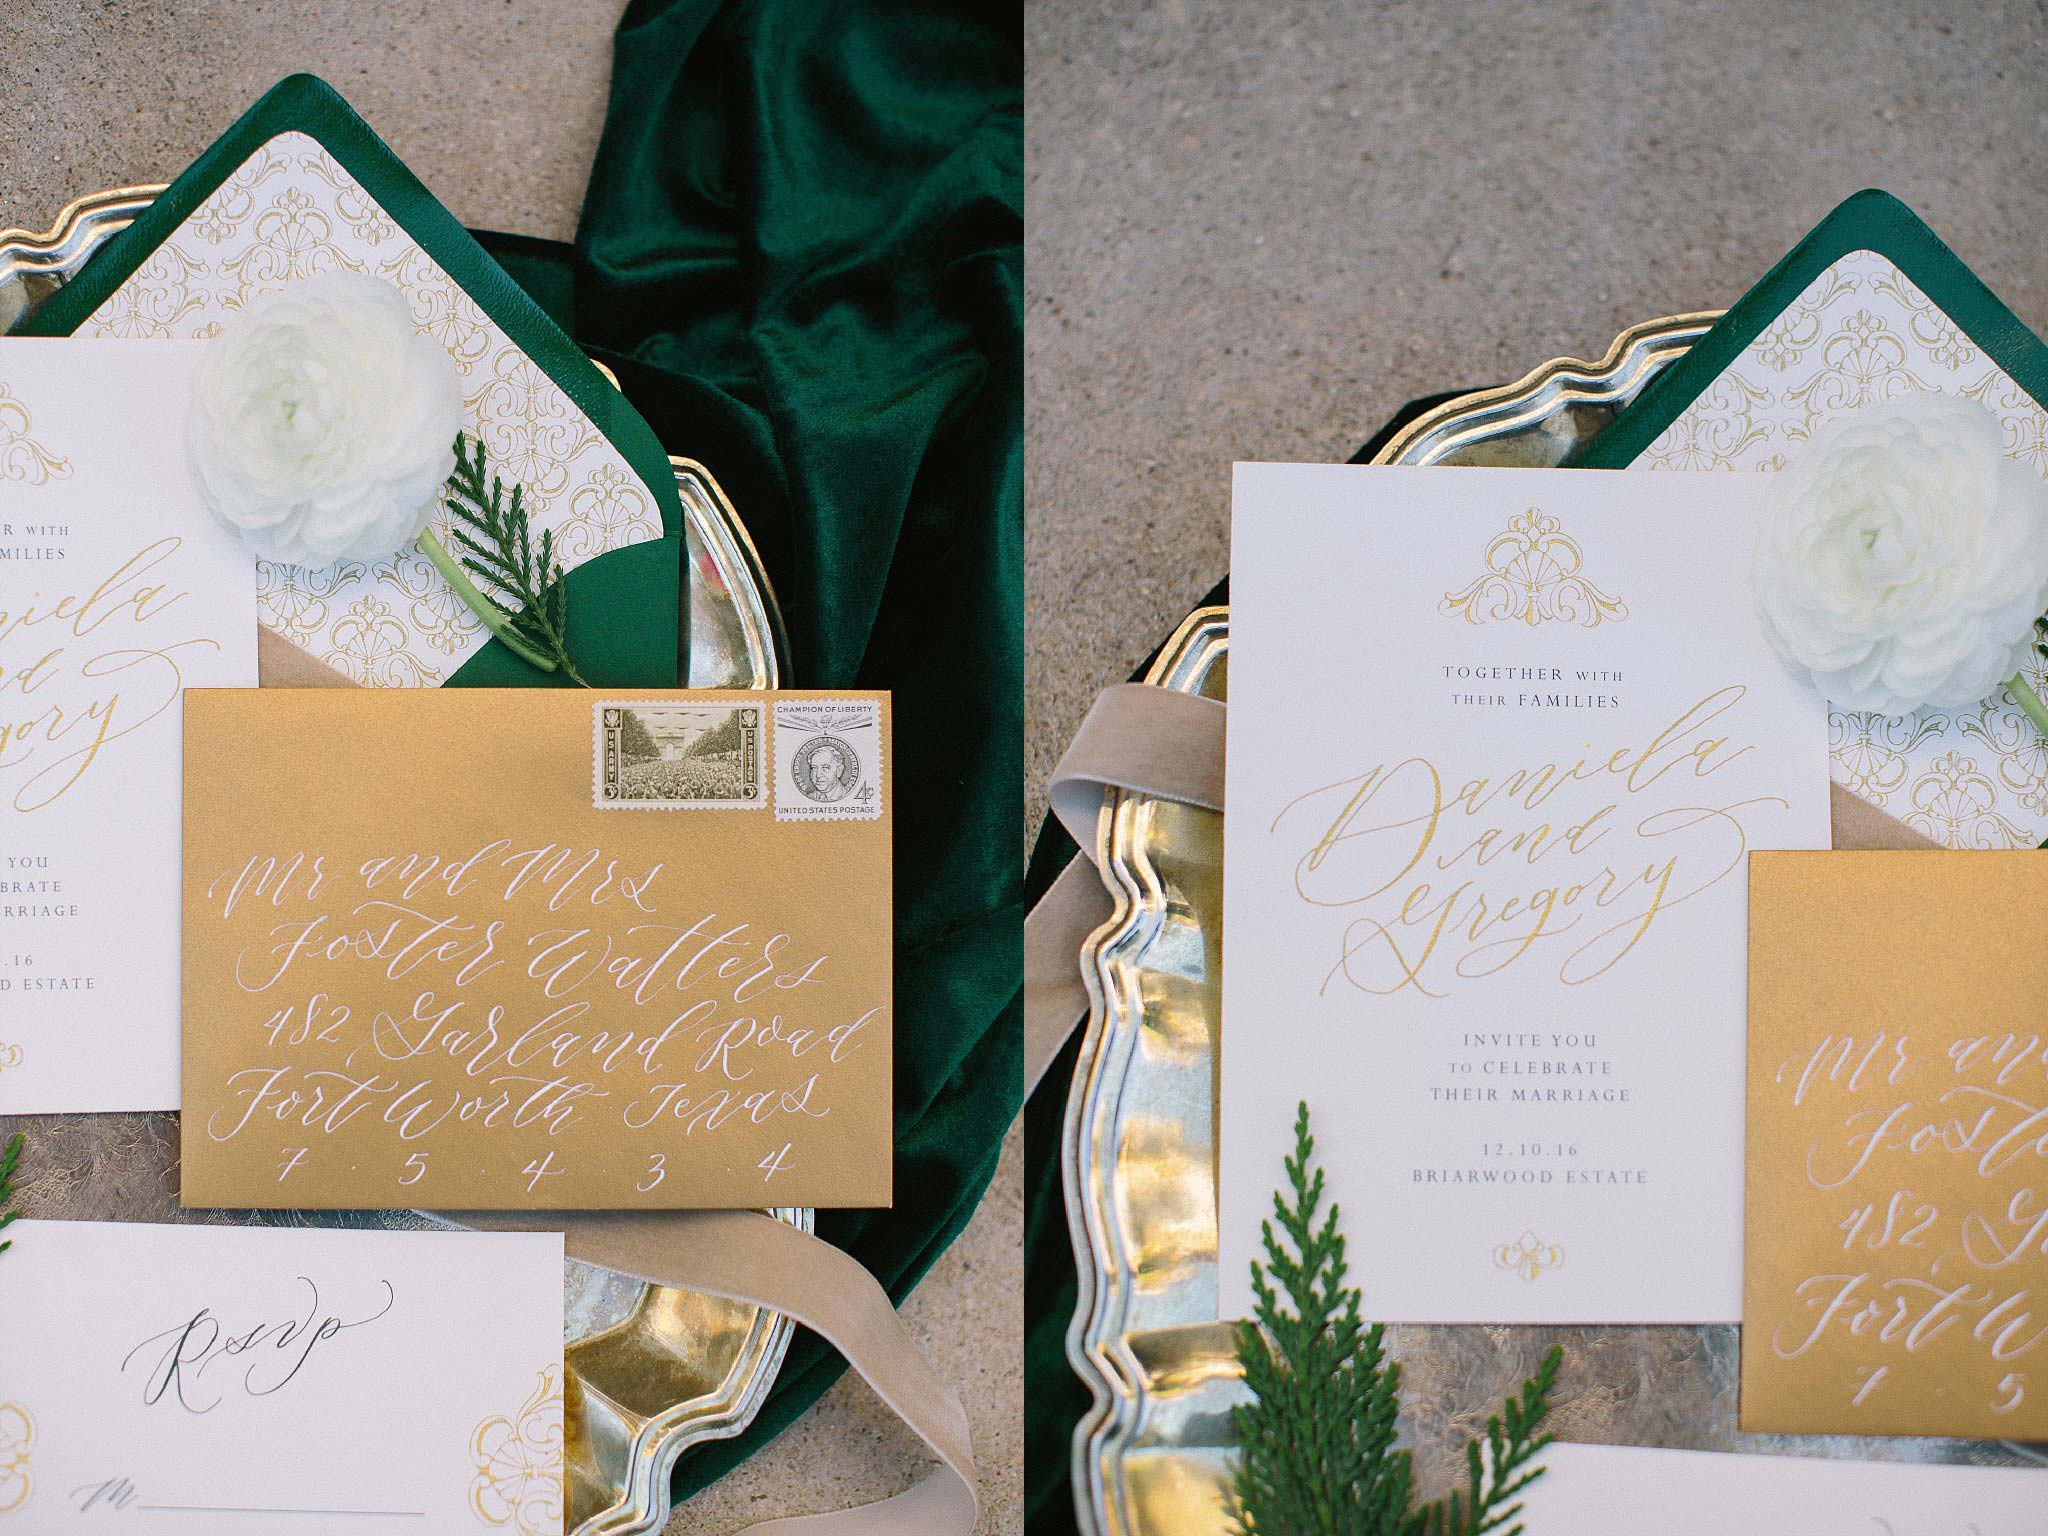 aristide mansfield wedding green and gold invitations with gold monogram